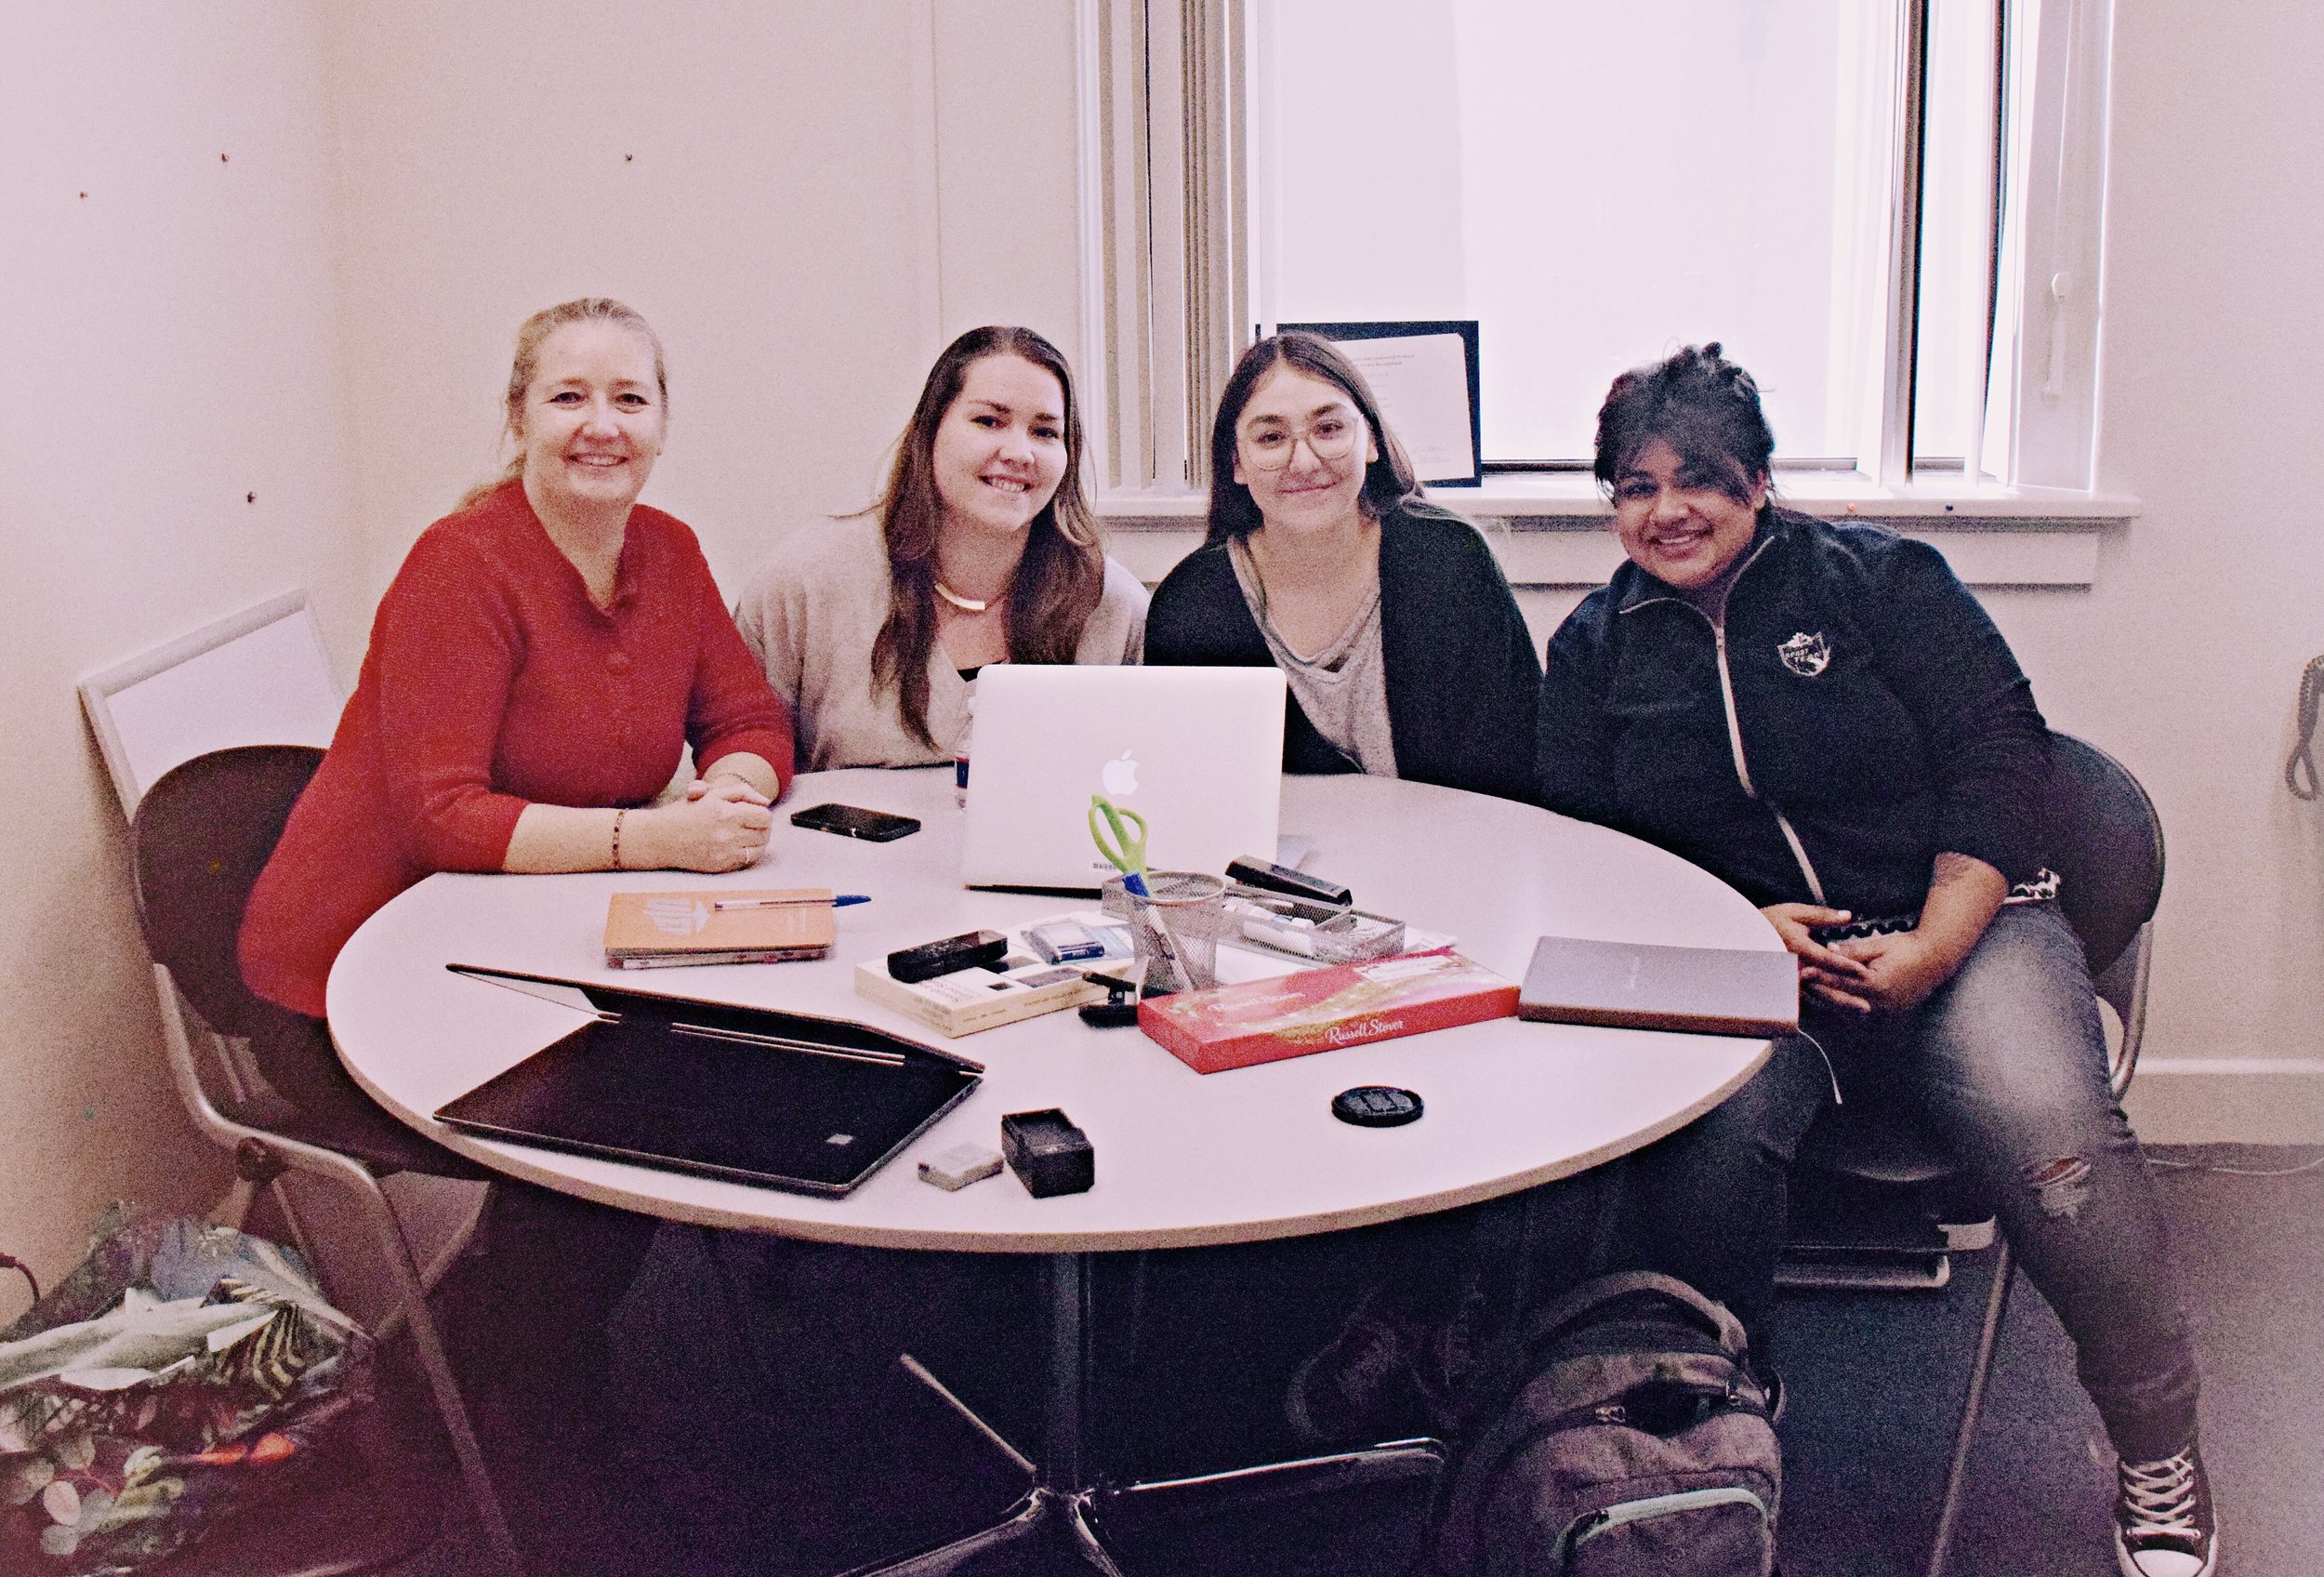 Women of color in computing - We are a team of students, faculty, and industry professionals who are helping one another in identifying constraints and affordances as women of color in computing. Click below to know more about us and the descriptions of our ongoing individual projects that we are building and making together critically and ethically.